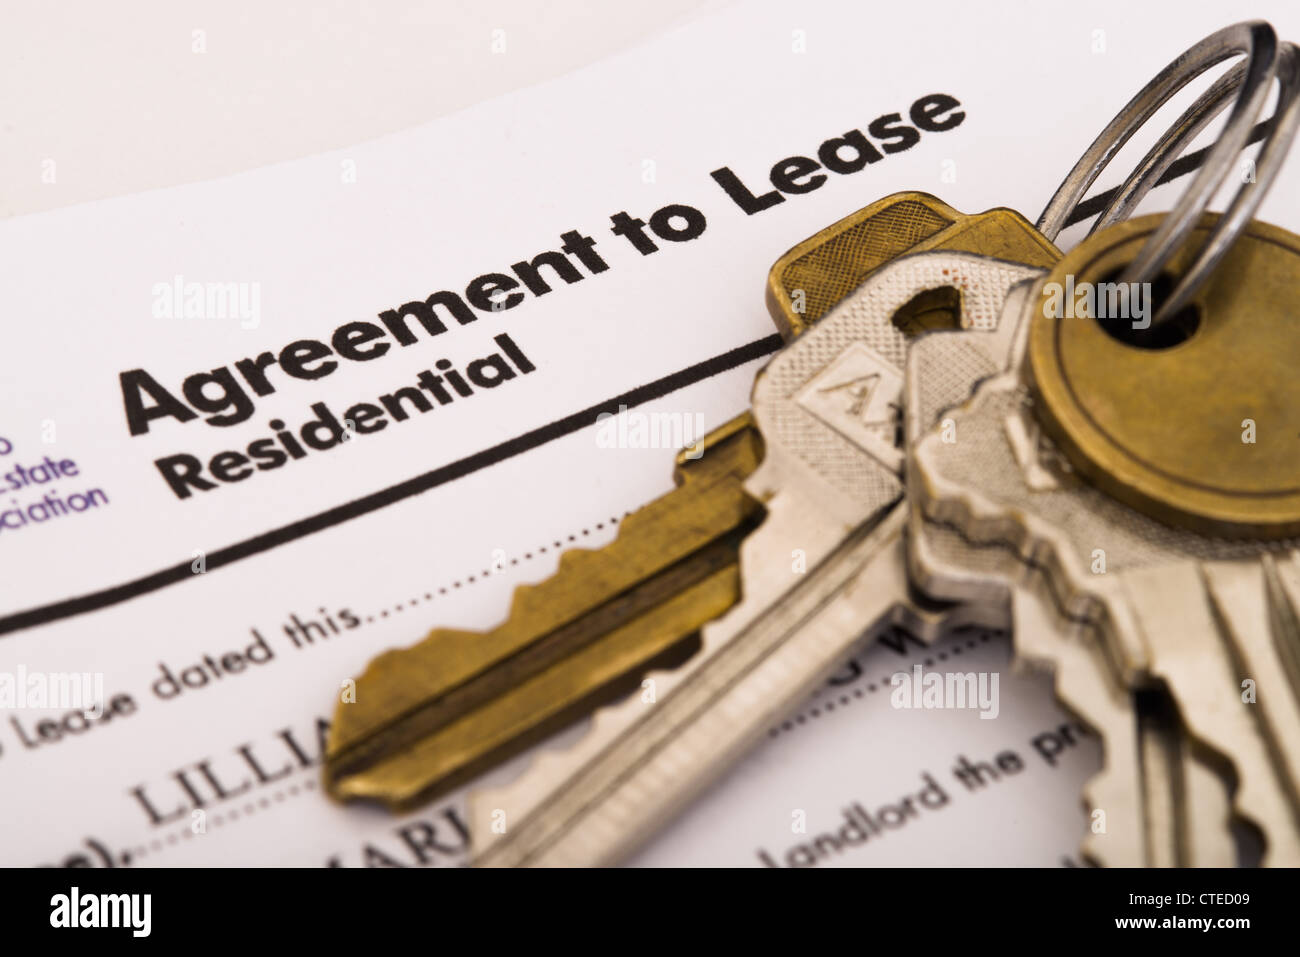 Keys and a lease agreement - Stock Image